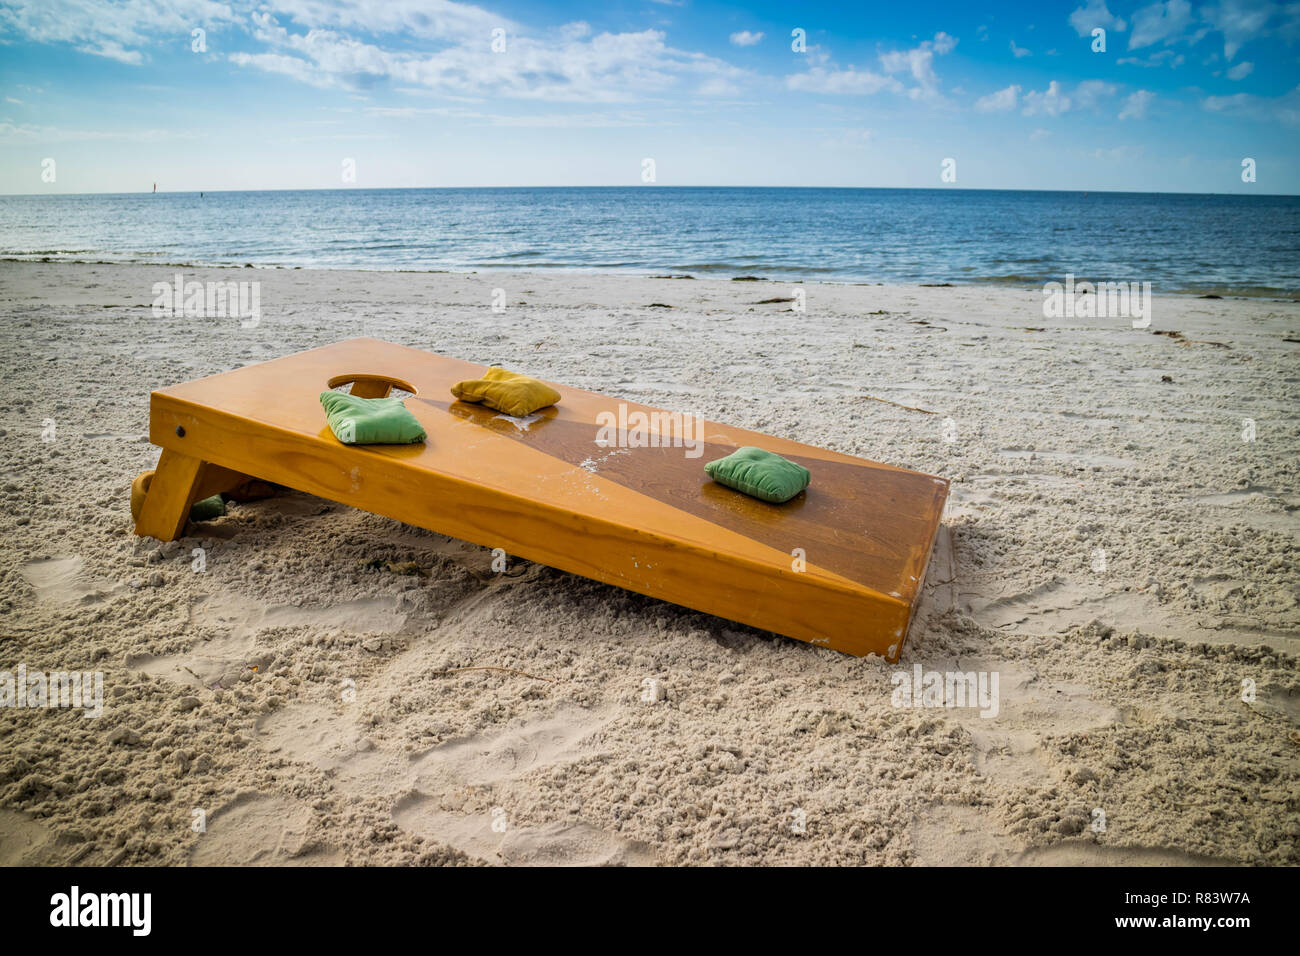 A popular game of Corn Hole in a fine weather at Fort Myers, Florida - Stock Image